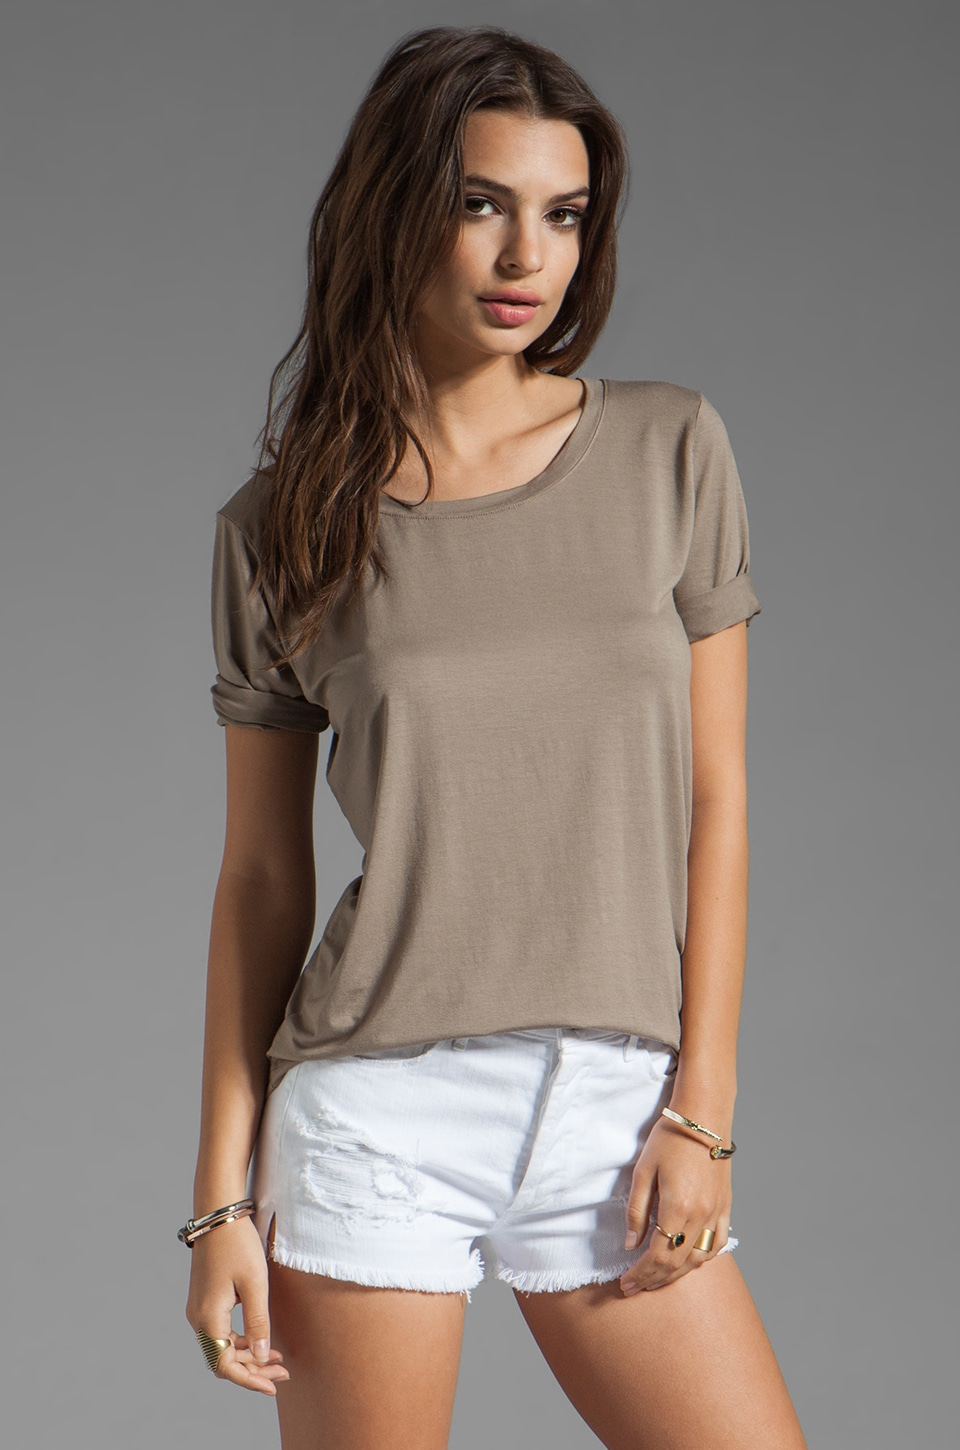 Feel the Piece Boyfriend Tee in Taupe